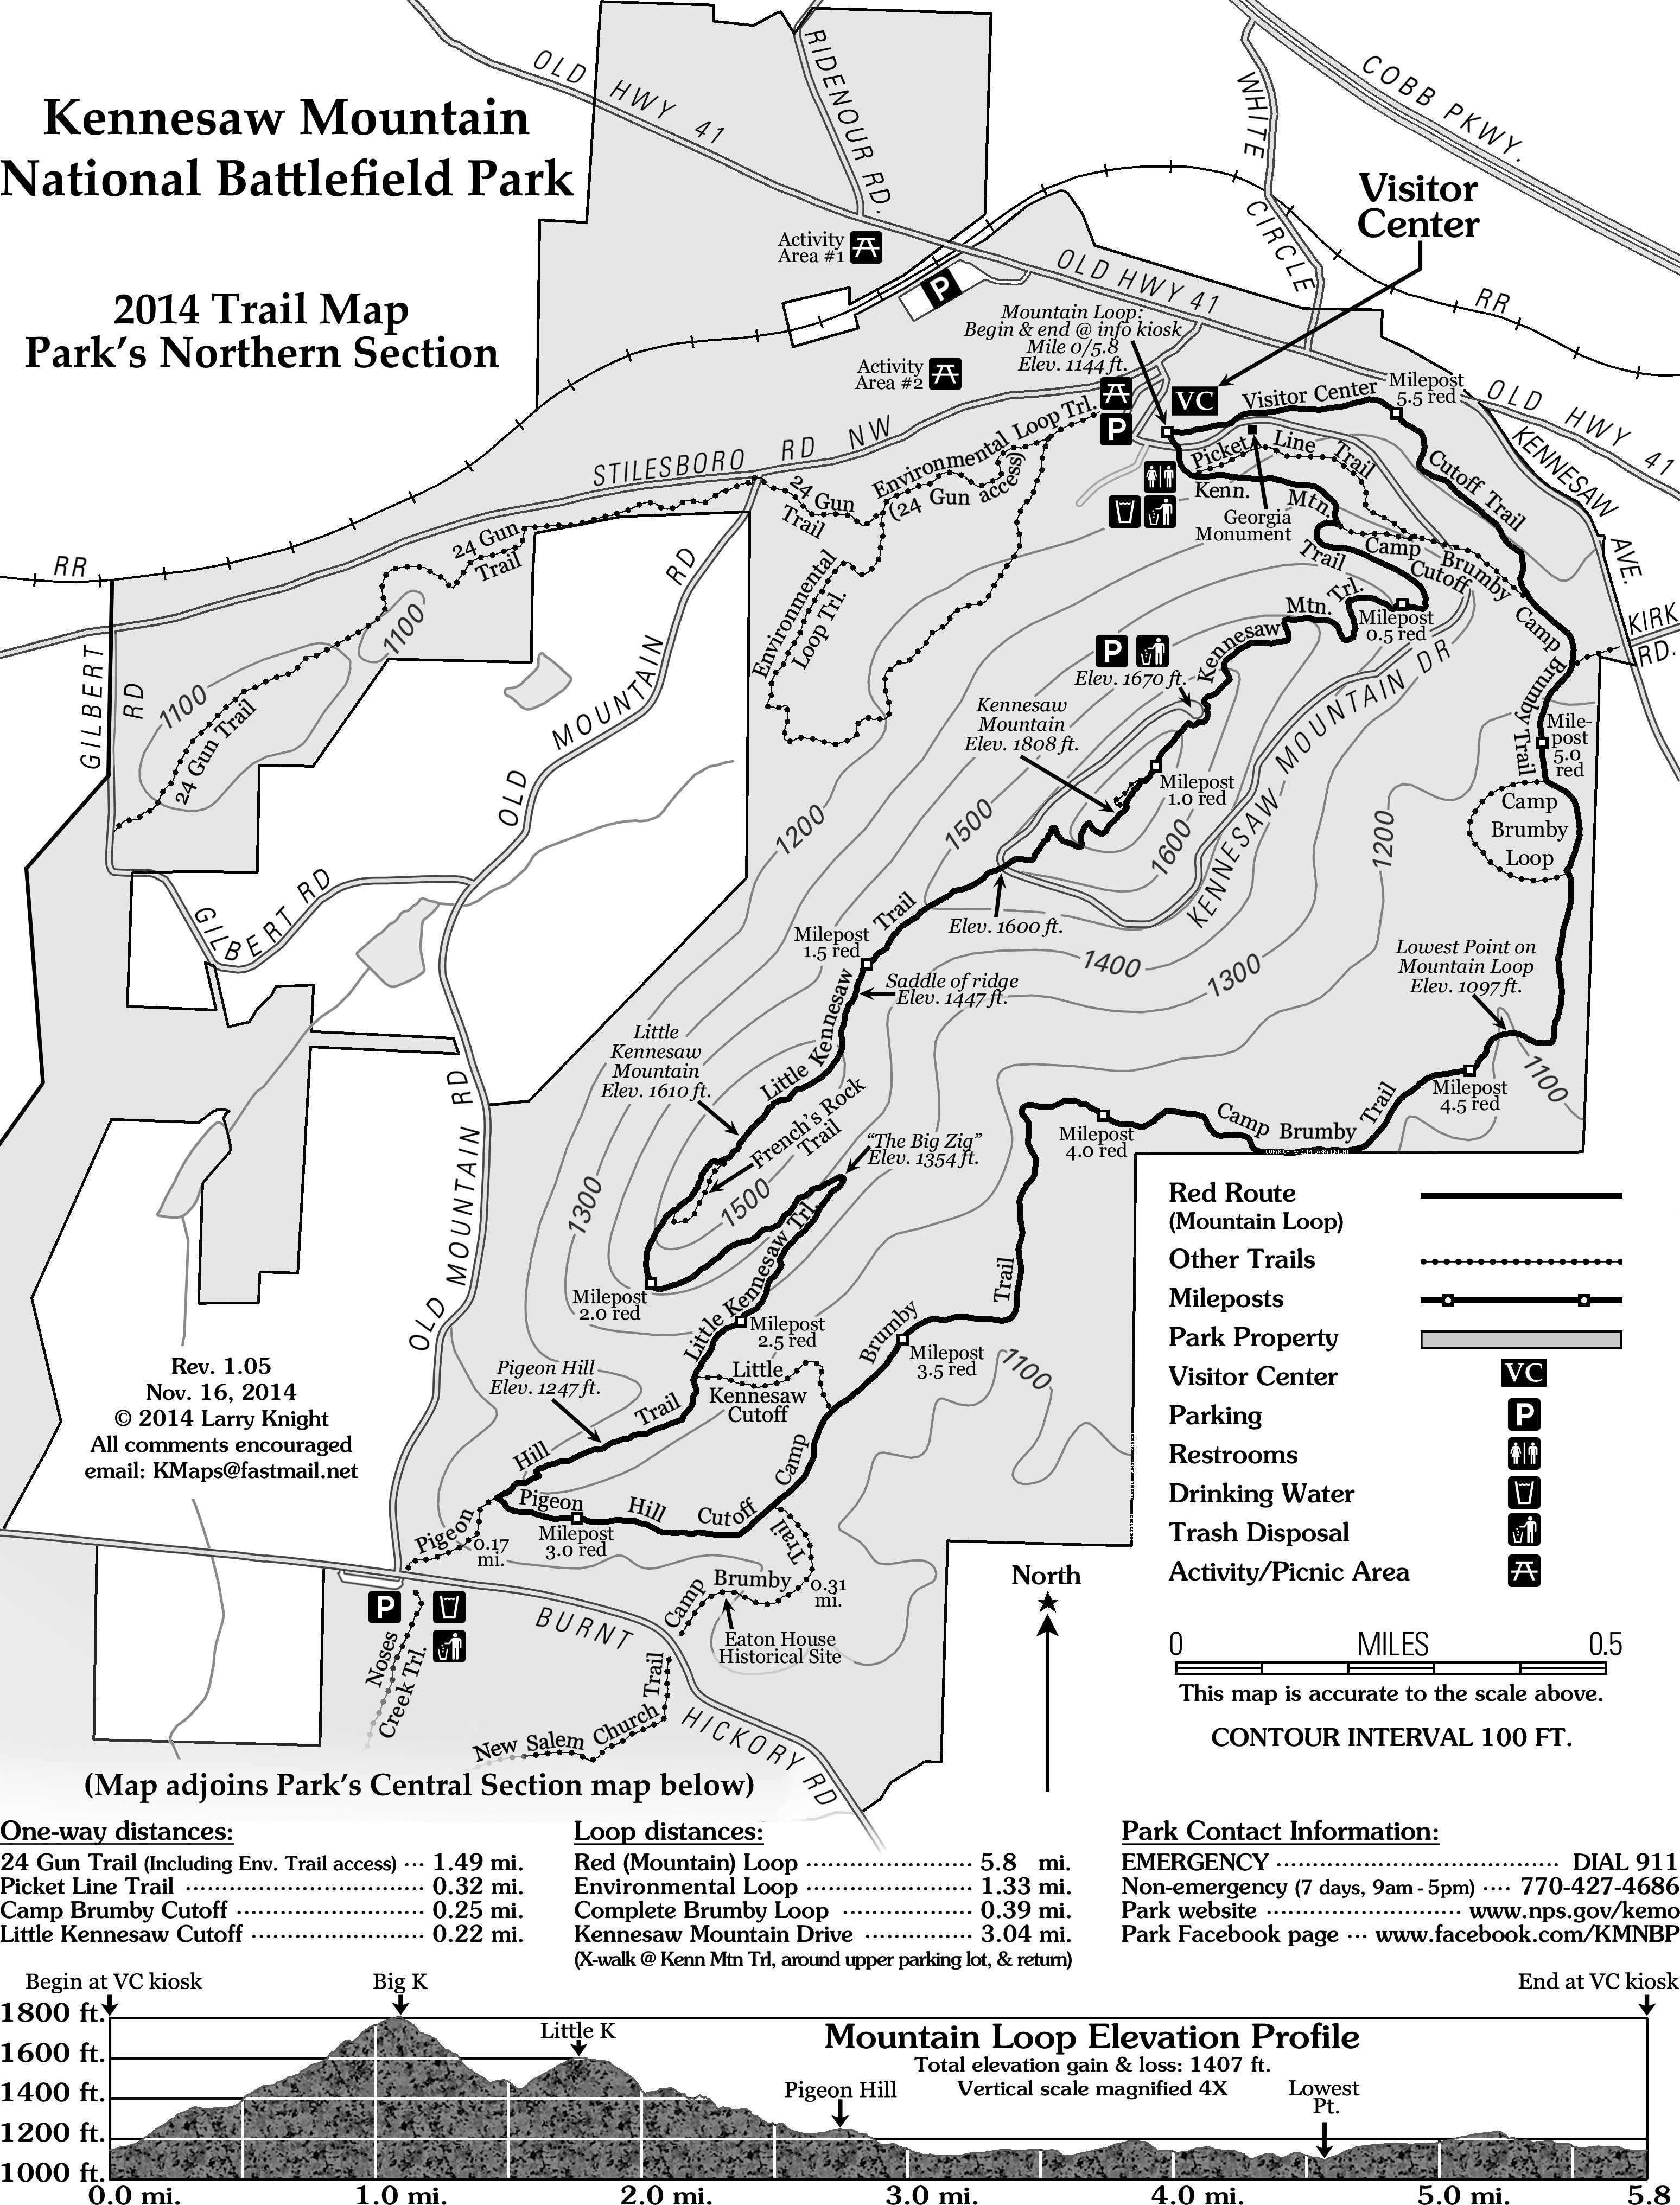 Kennesaw Mountain Maps | NPMaps.com - just free maps, period. on forsyth map, dalton map, sandy springs map, cedartown map, macon map, acworth map, montgomery map, elberton map, suwanee map, tullahoma map, cartersville map, austell map, roswell map, douglasville map, lithonia map, logansport map, hamilton mill map, lawrenceville map, alpharetta map, dunwoody map,